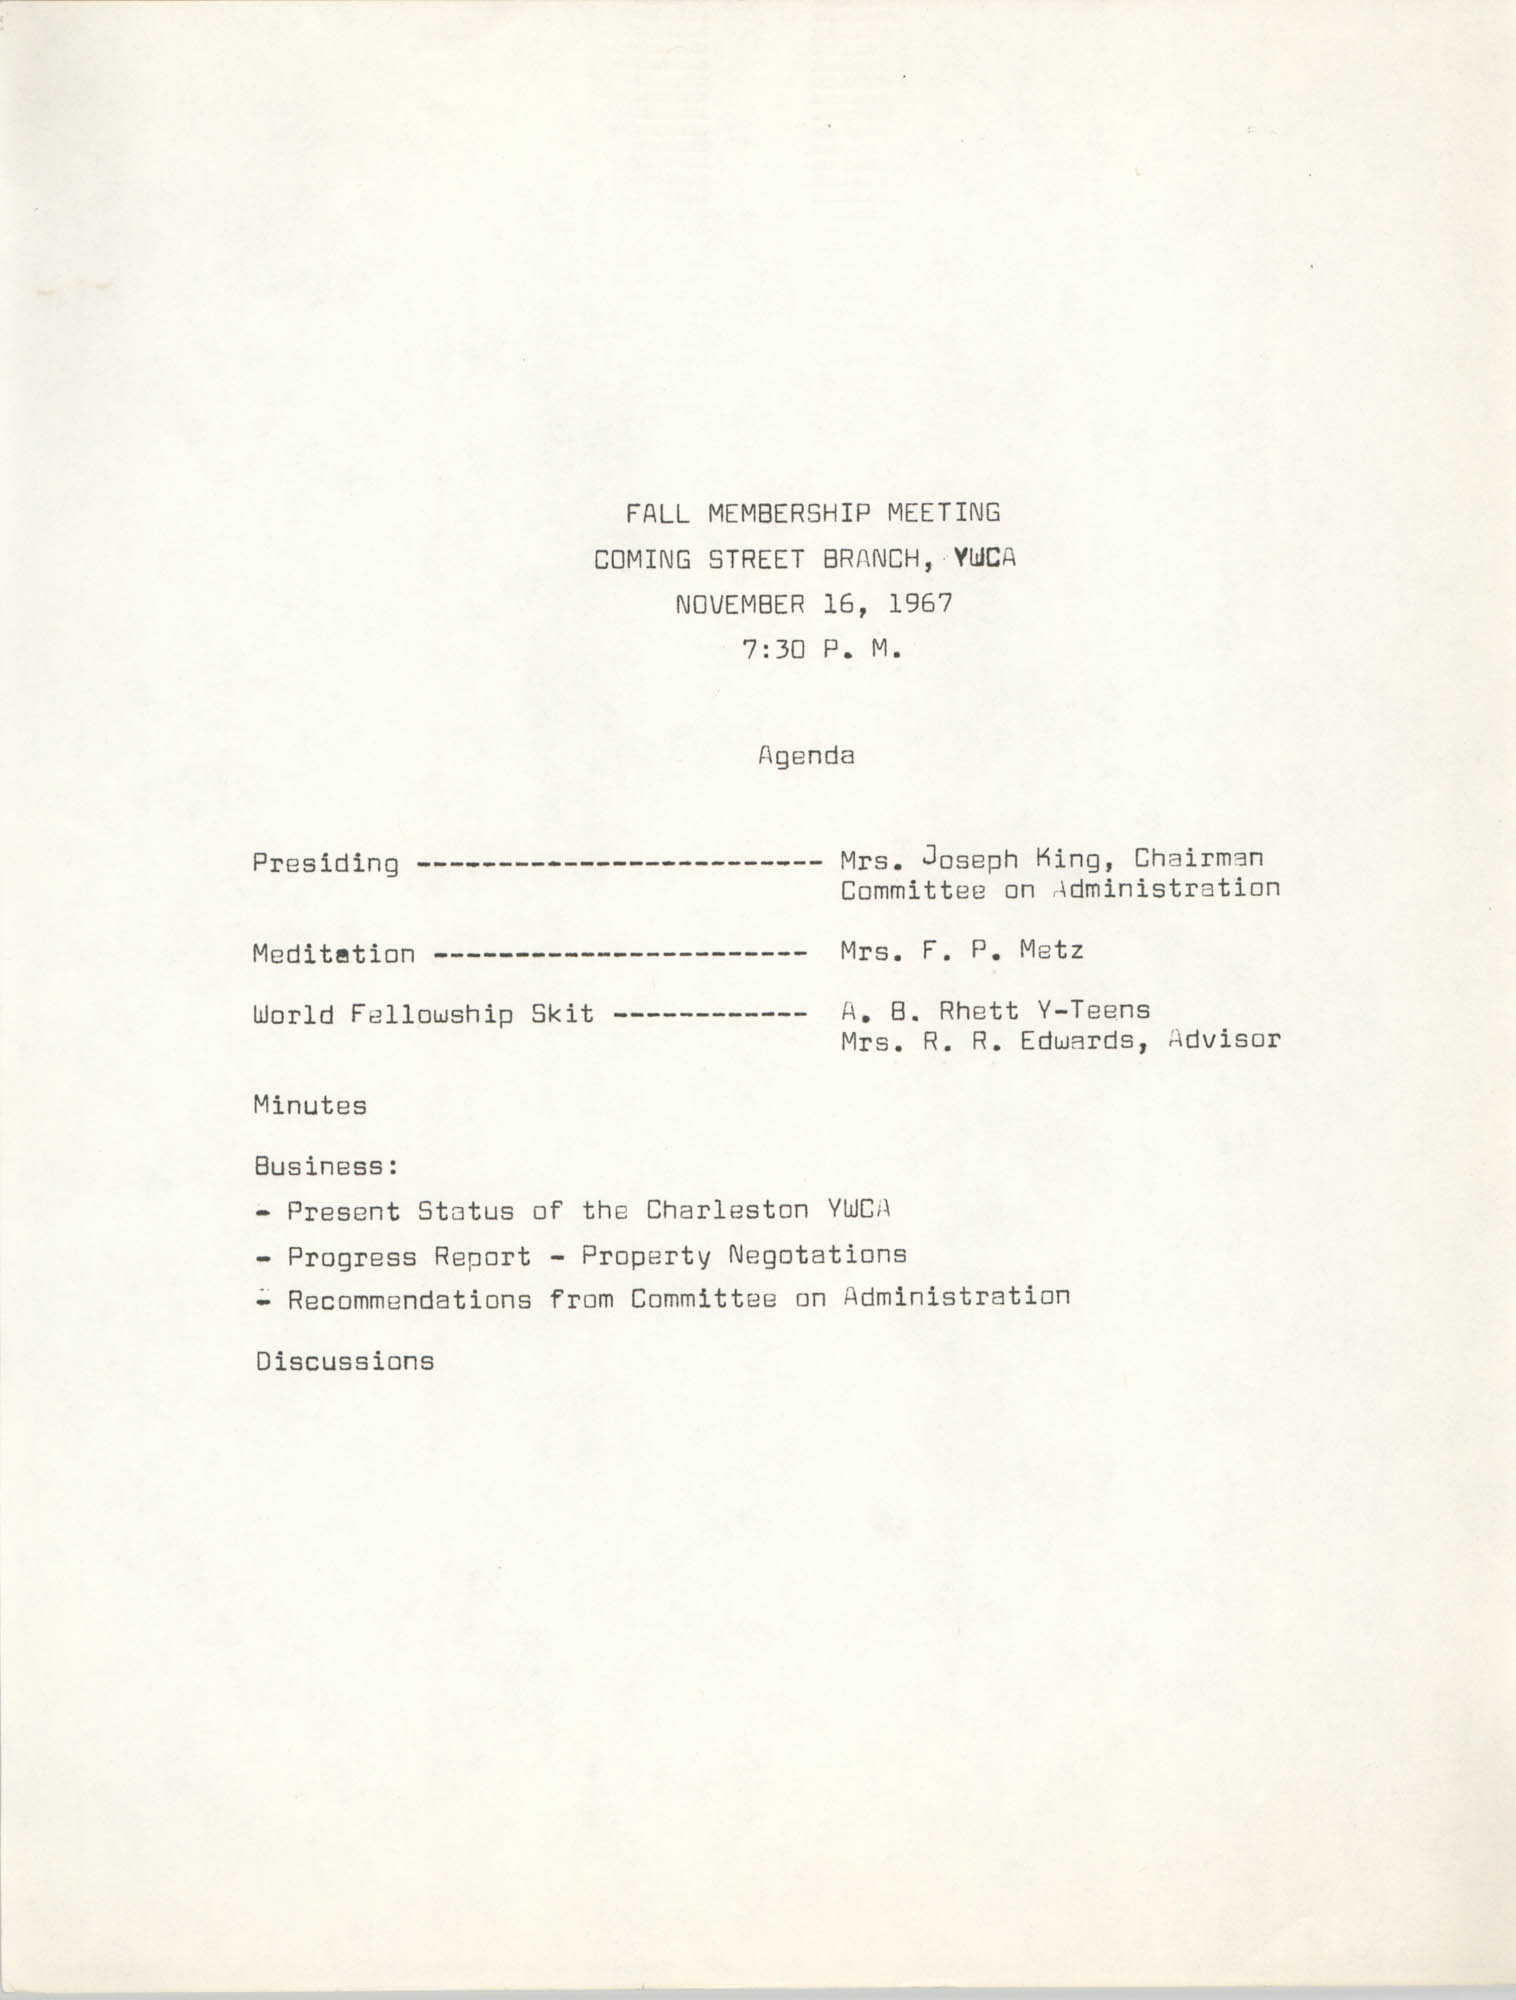 Agenda, Fall Membership Meeting, Coming Street Y.W.C.A., November 16, 1967